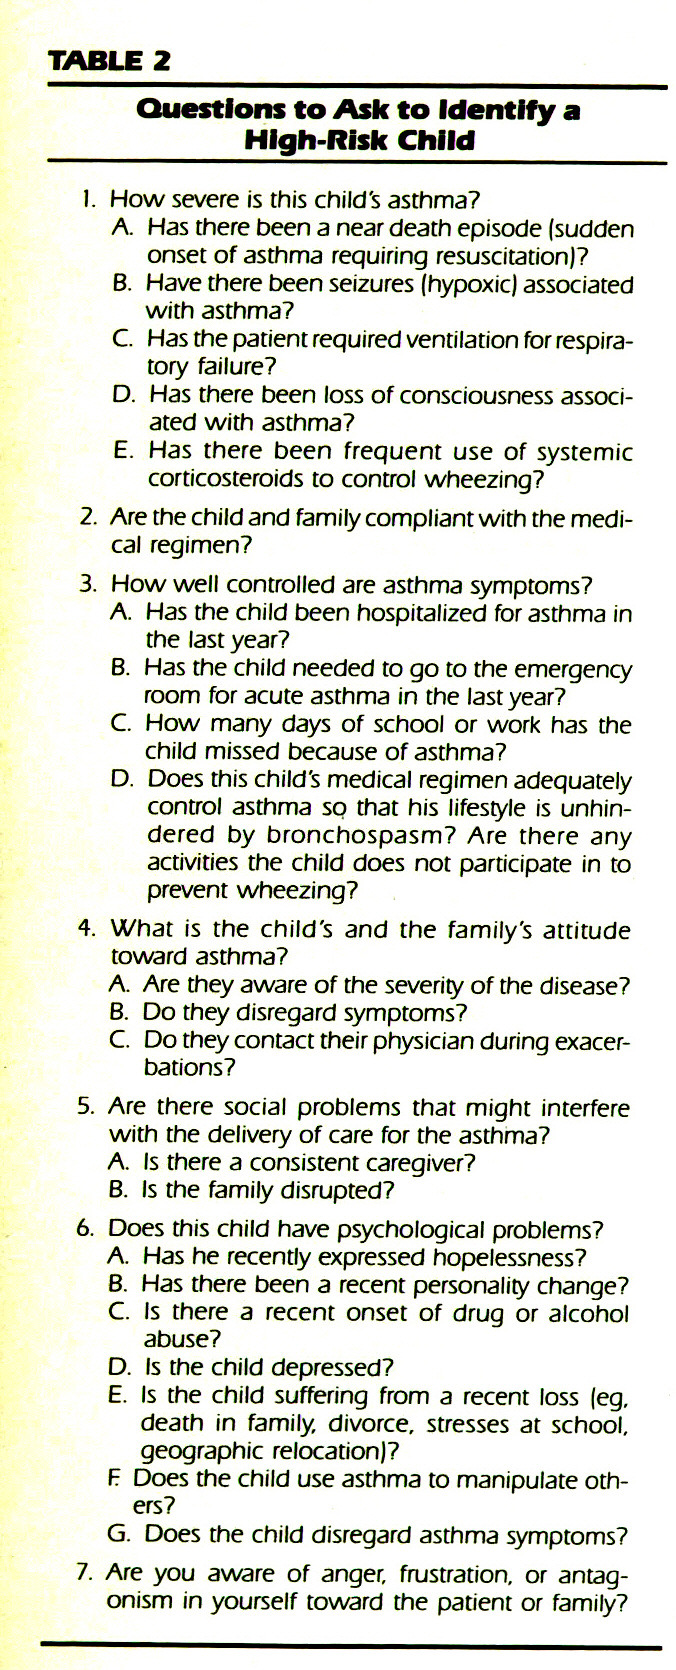 TABLE 2Questions to Ask to Identify a High-Risk Child